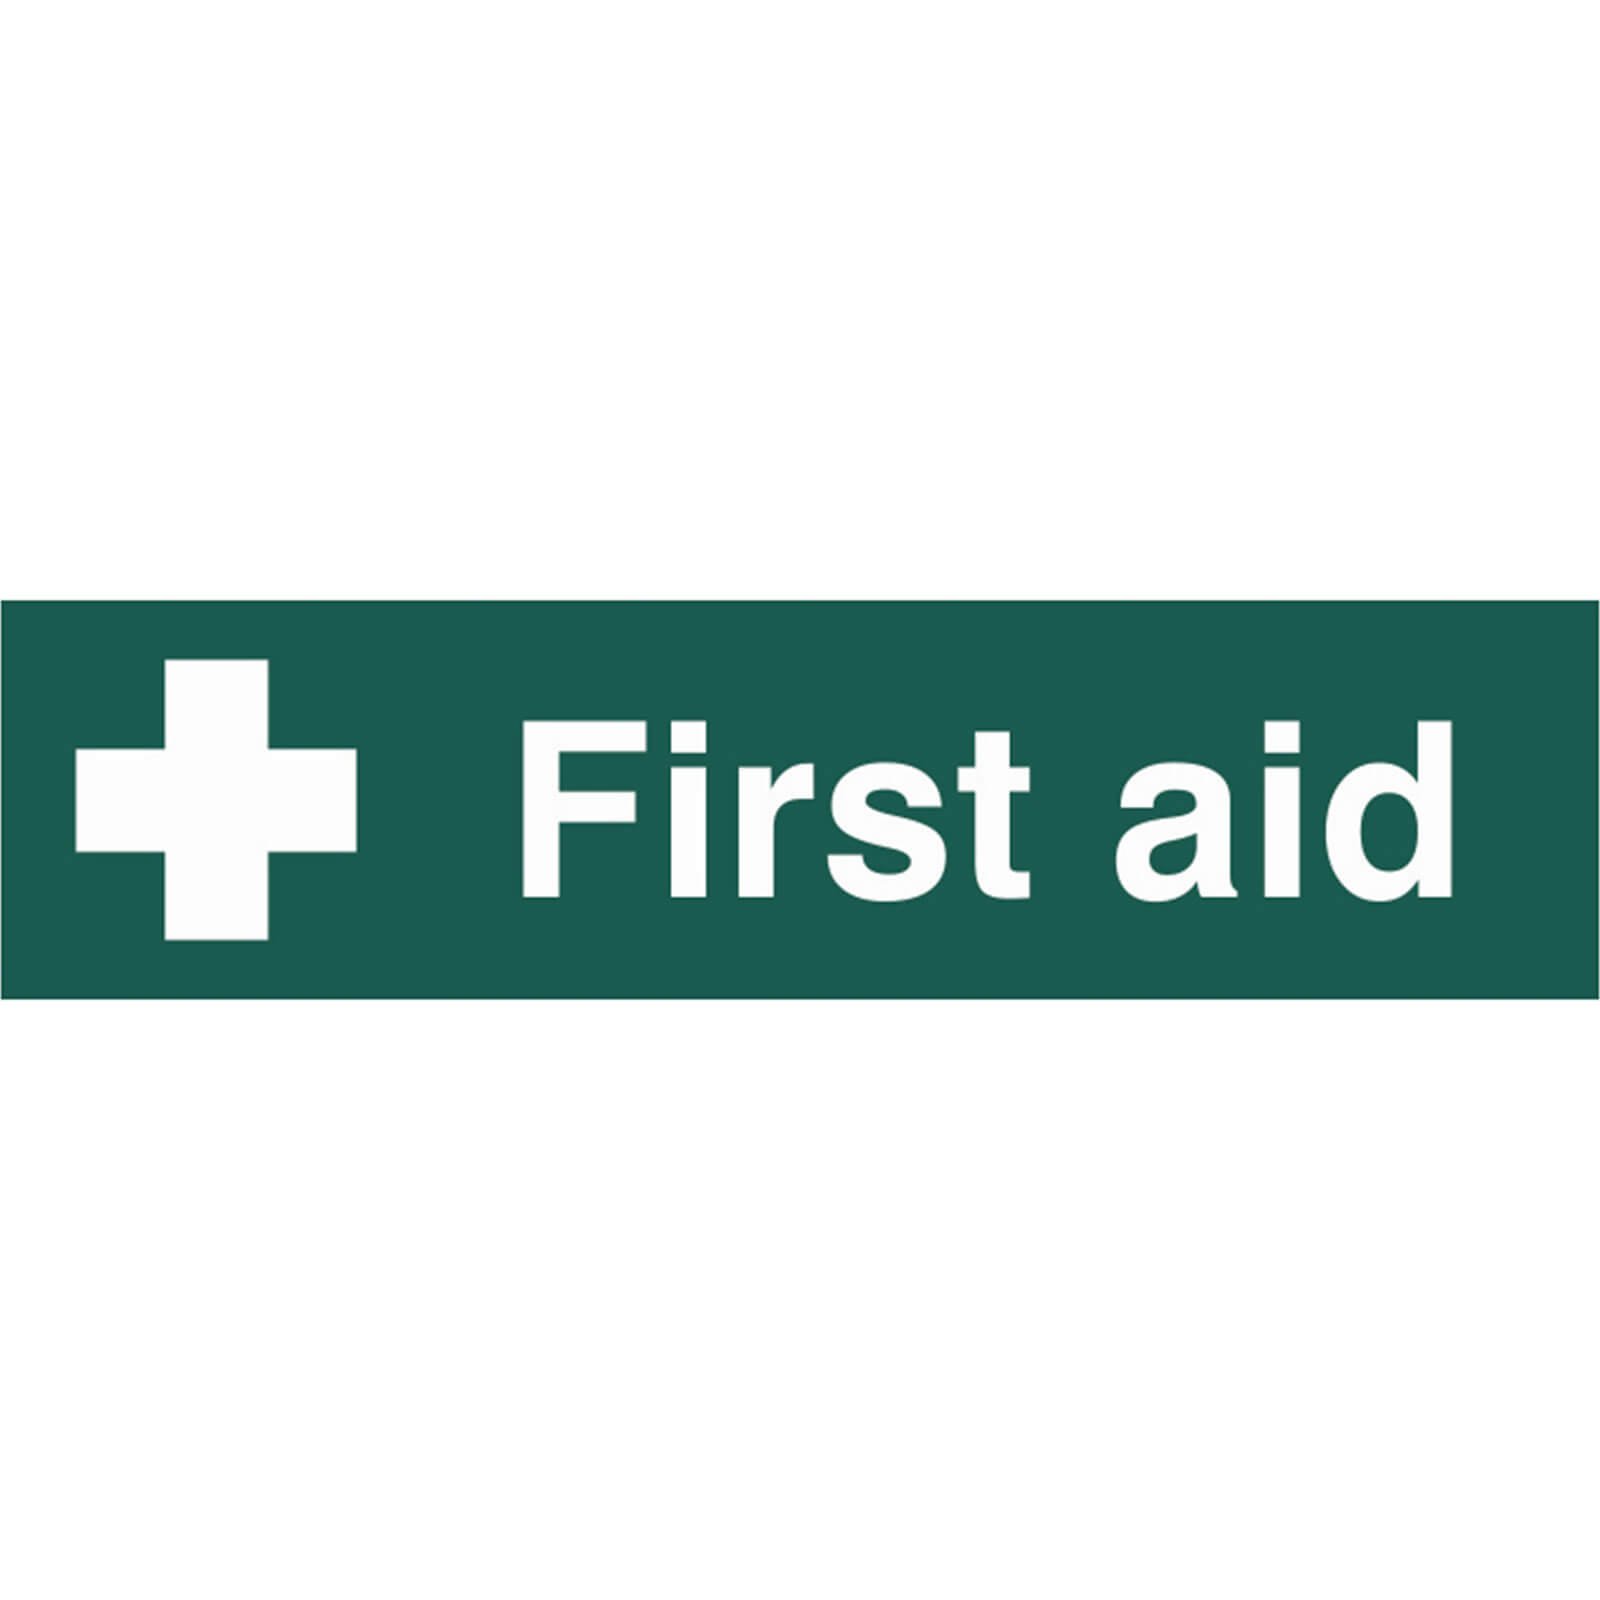 Tooled Up/Safety & Workwear/Safety/Scan 200 x 50mm PVC Sign - First Aid